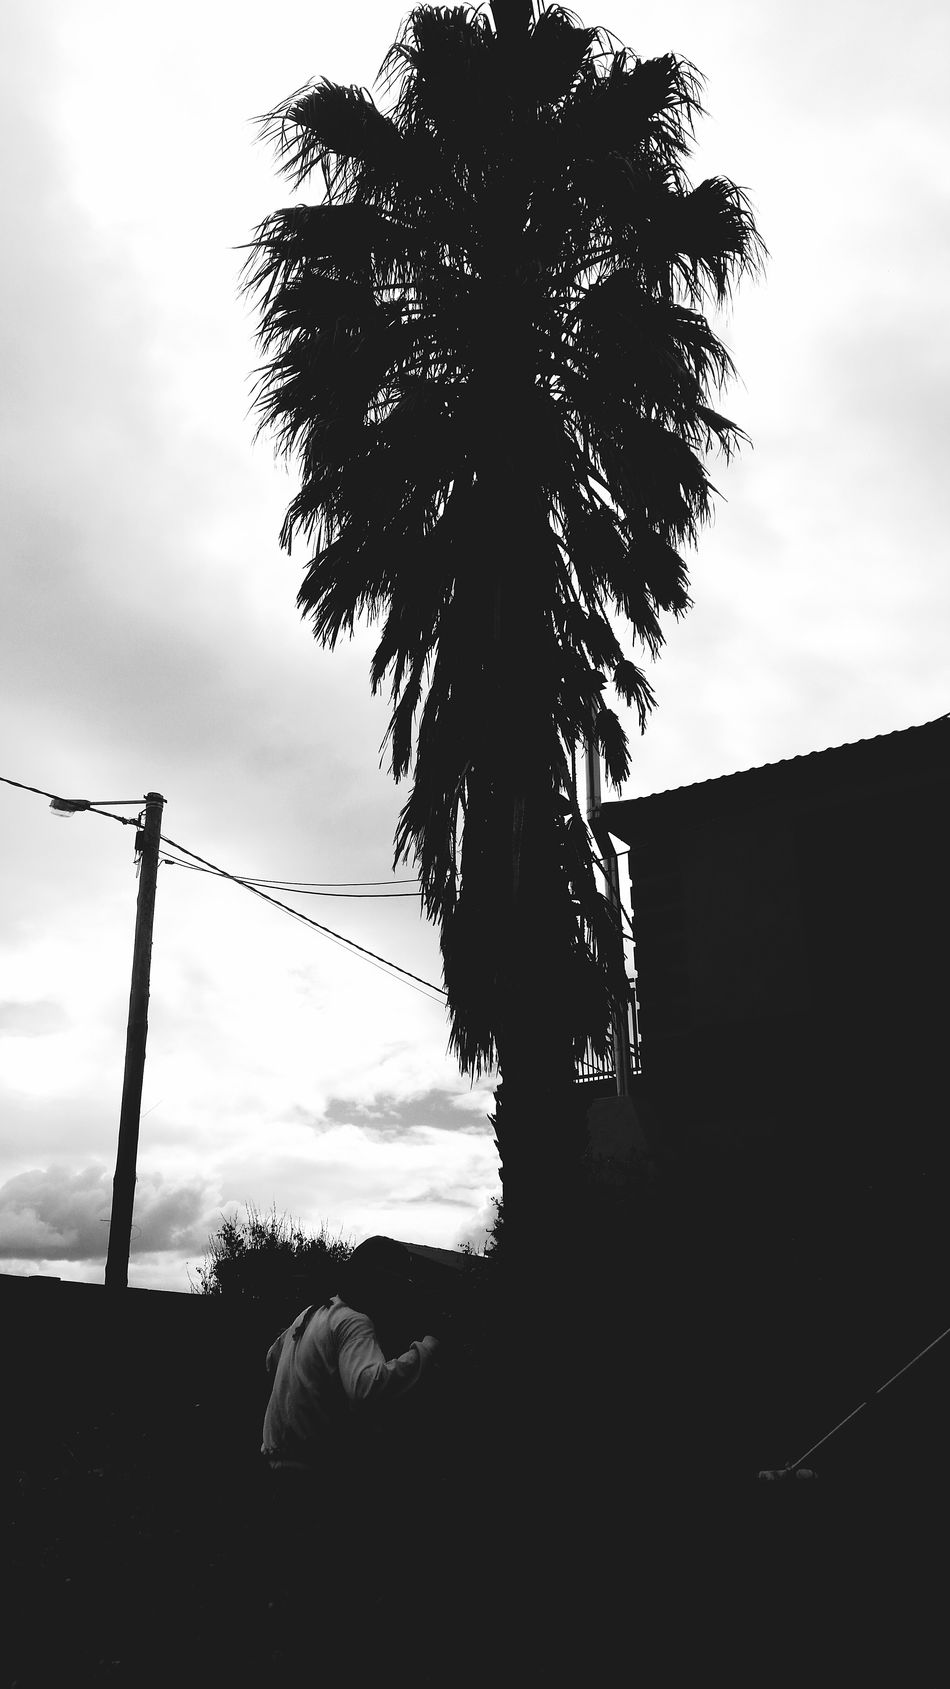 Palm Tree The Headless Man Garden Sky Cloud - Sky Scenics Beauty In Nature